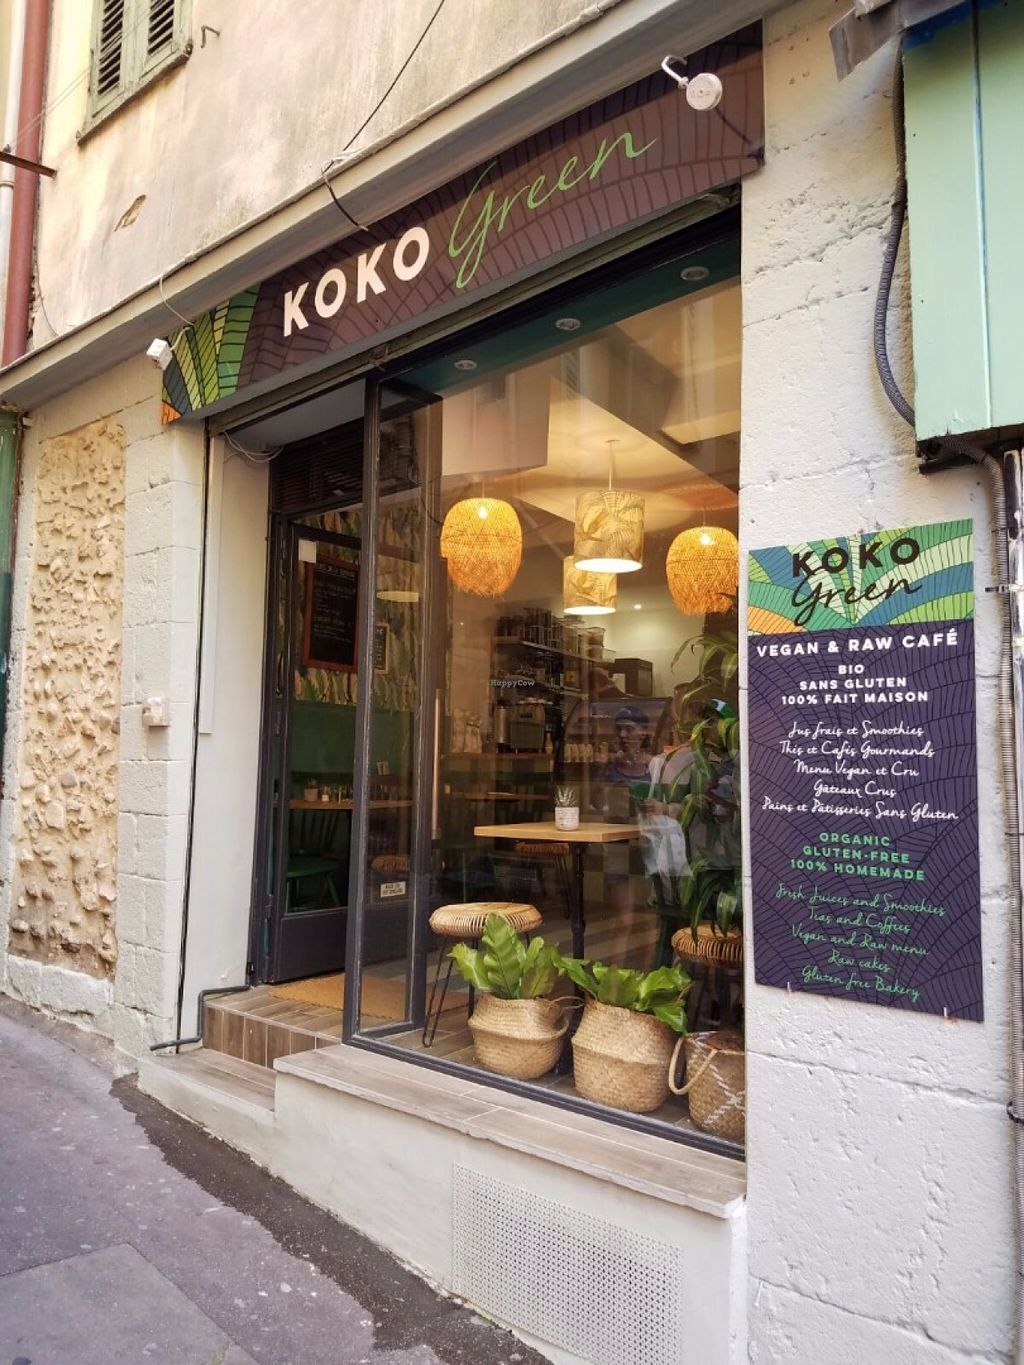 """Photo of KOKO Green  by <a href=""""/members/profile/KarimKanfoudi"""">KarimKanfoudi</a> <br/>Outside KoKo Green <br/> June 24, 2016  - <a href='/contact/abuse/image/75042/155872'>Report</a>"""